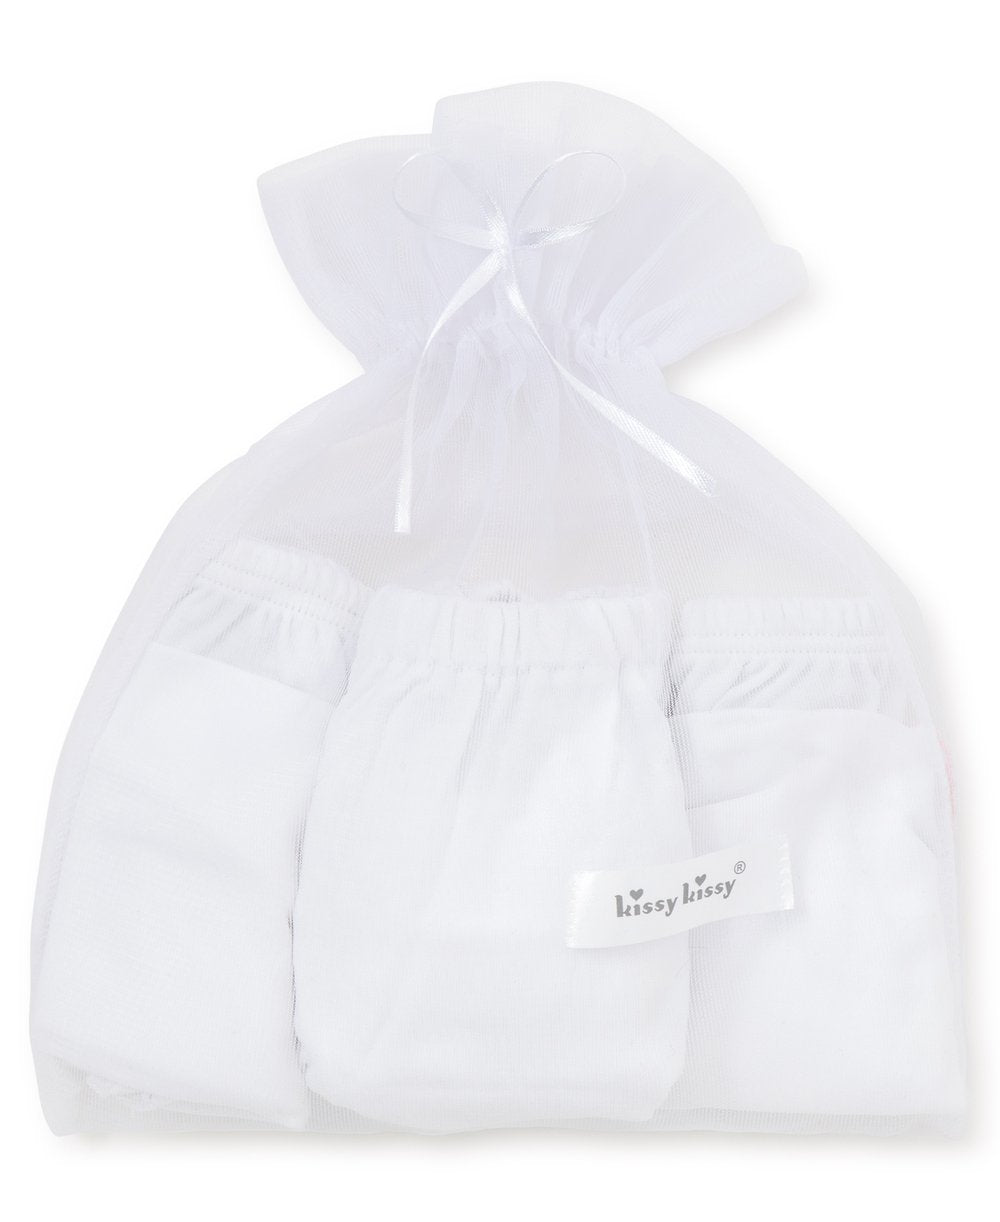 Kissy Basic Diaper Cover Set w/tb